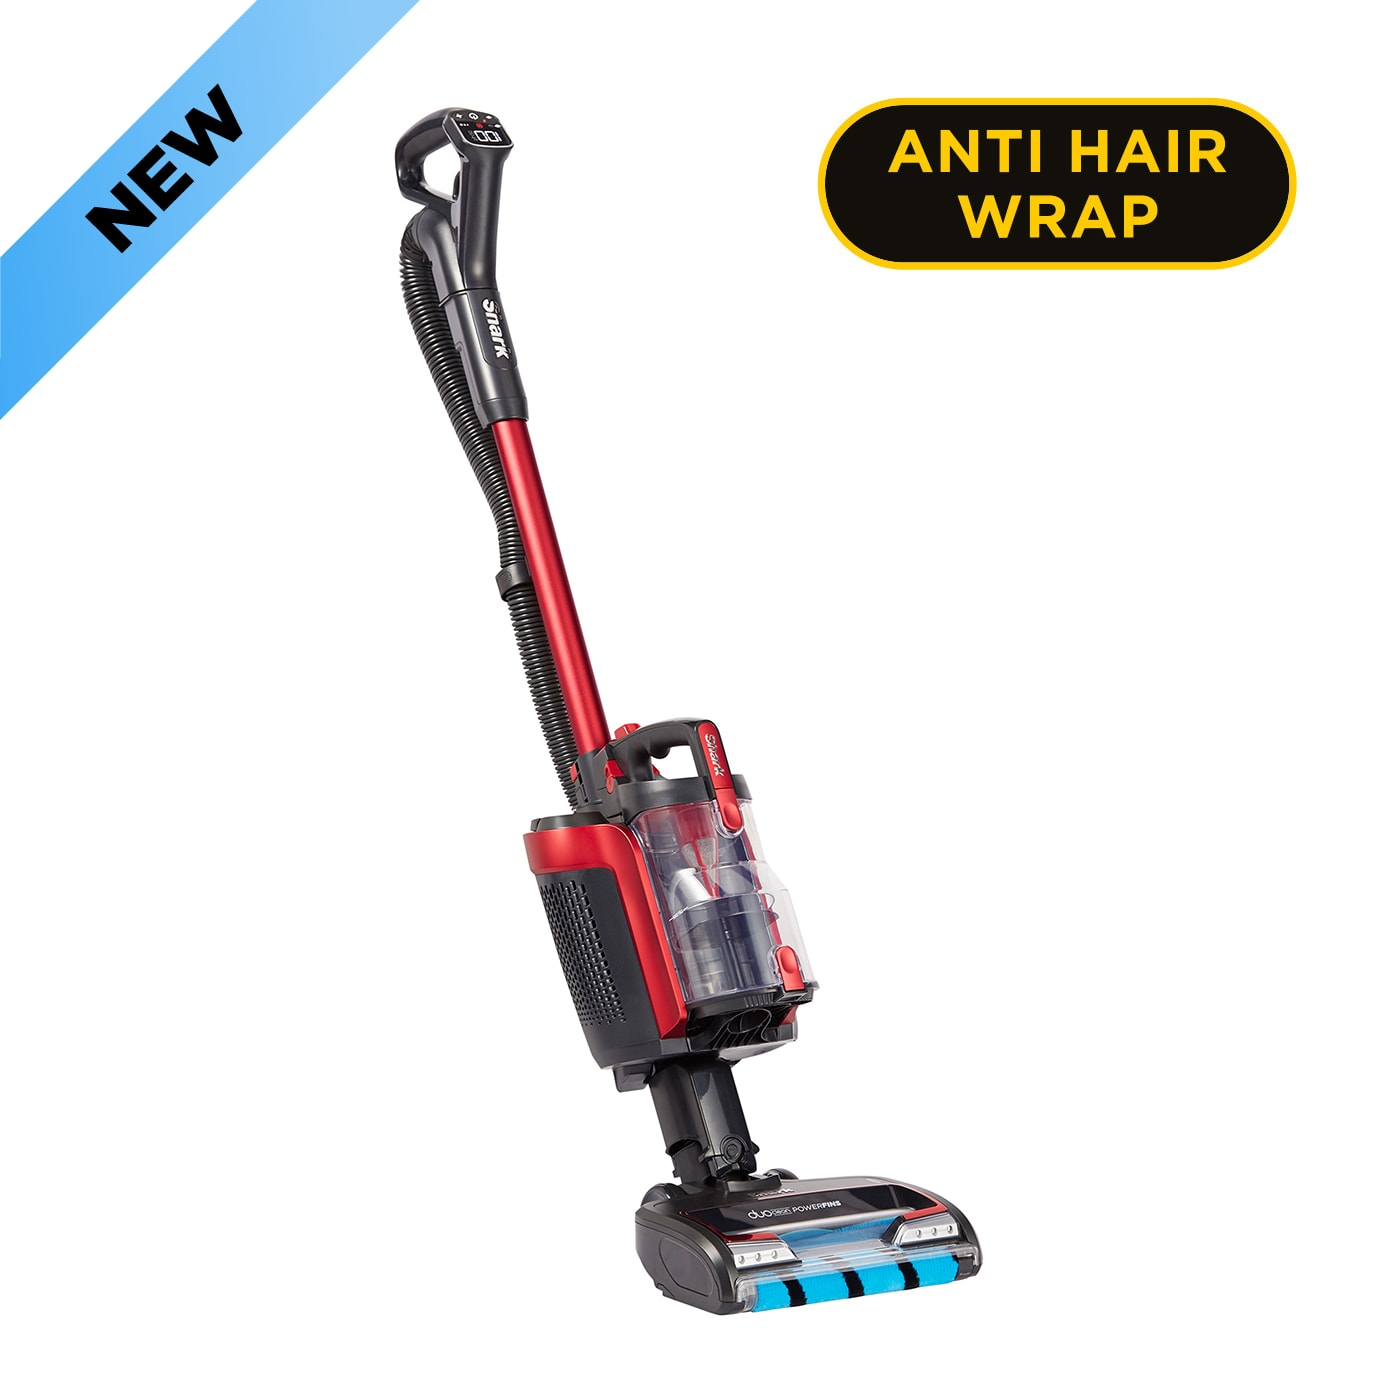 Shark Anti Hair Wrap Cordless Upright Vacuum Cleaner with PowerFins & Powered Lift-Away ICZ300UK product photo